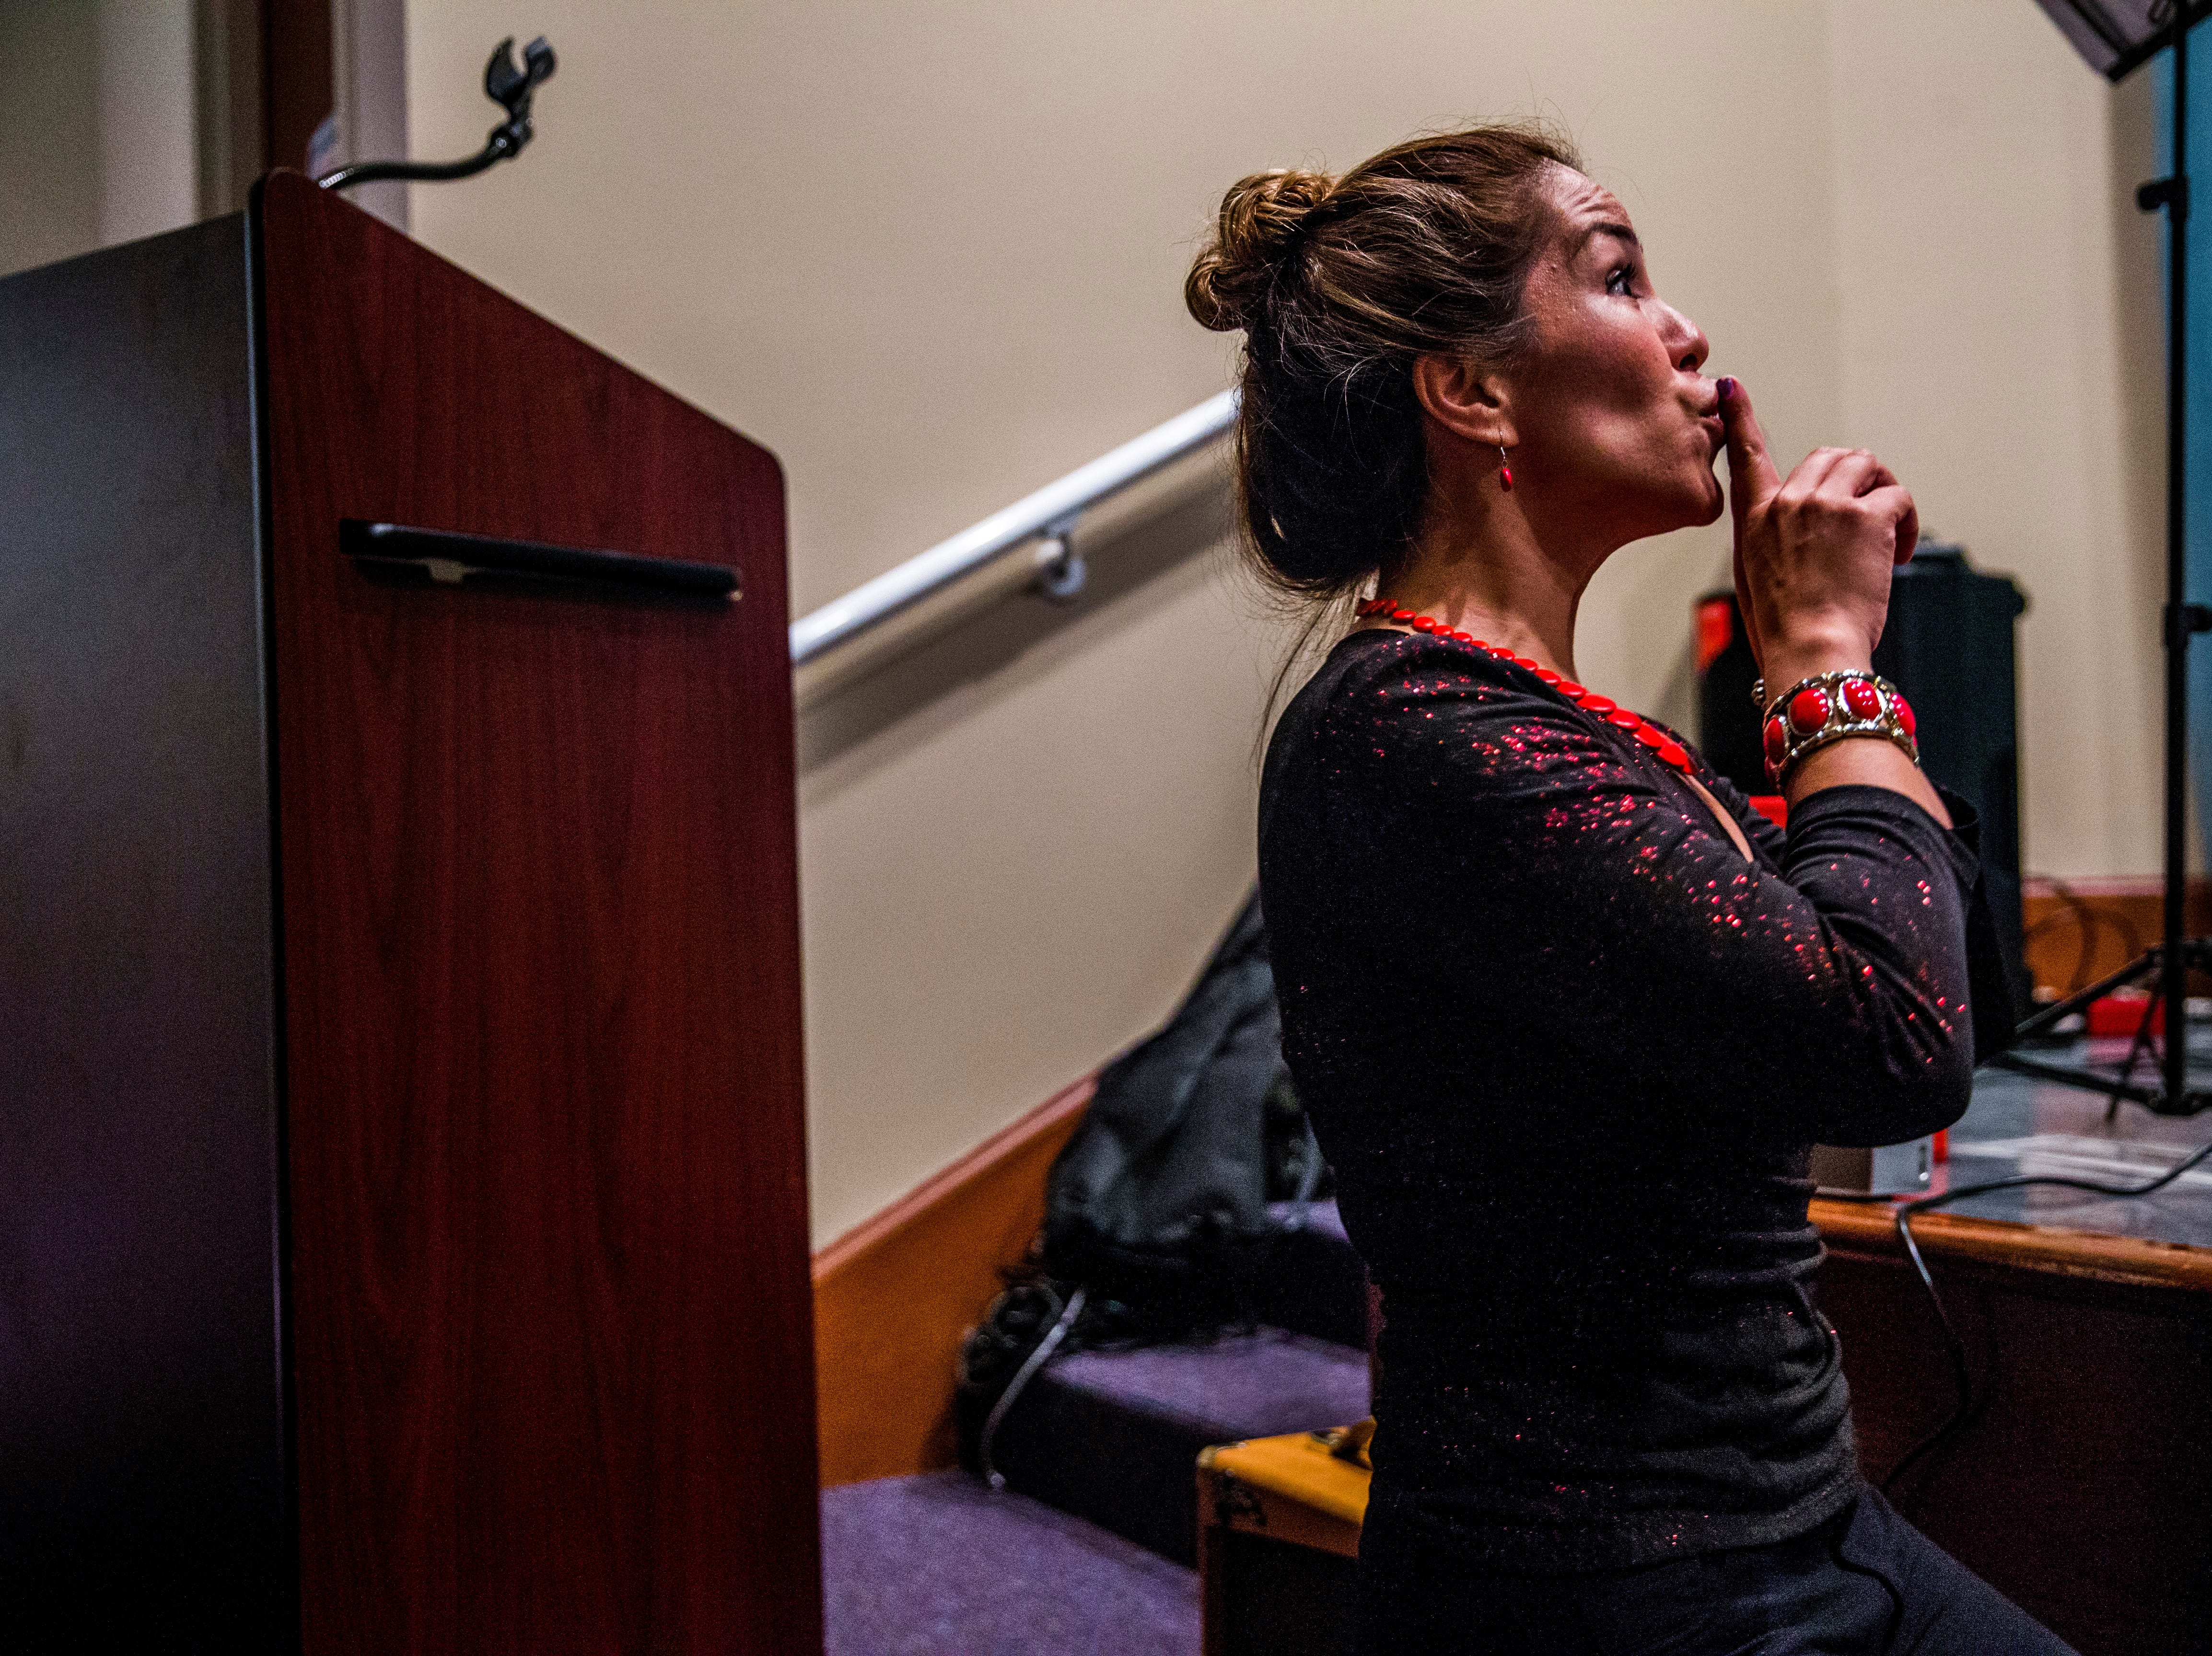 Marcela Guimoye instructs the EndlessBrain campers during their recital for their friends and family at the Collier County Library in Naples on Saturday, Aug. 11, 2018. To conclude the camp, Guimoye put on a recital for the campers to be able to perform the songs they learned during their time with EndlessBrain.